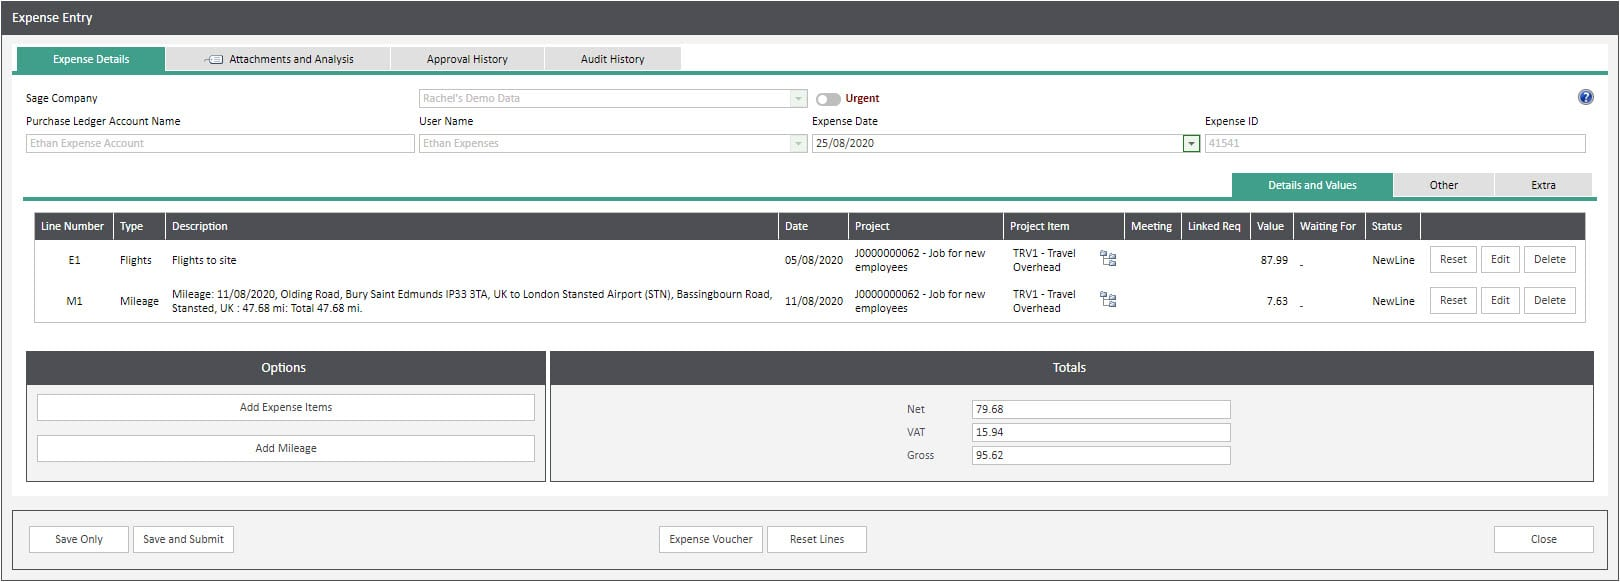 Sicon WAP Expenses Help and User Guide - Expenses HUG Section 6.3 Image 11